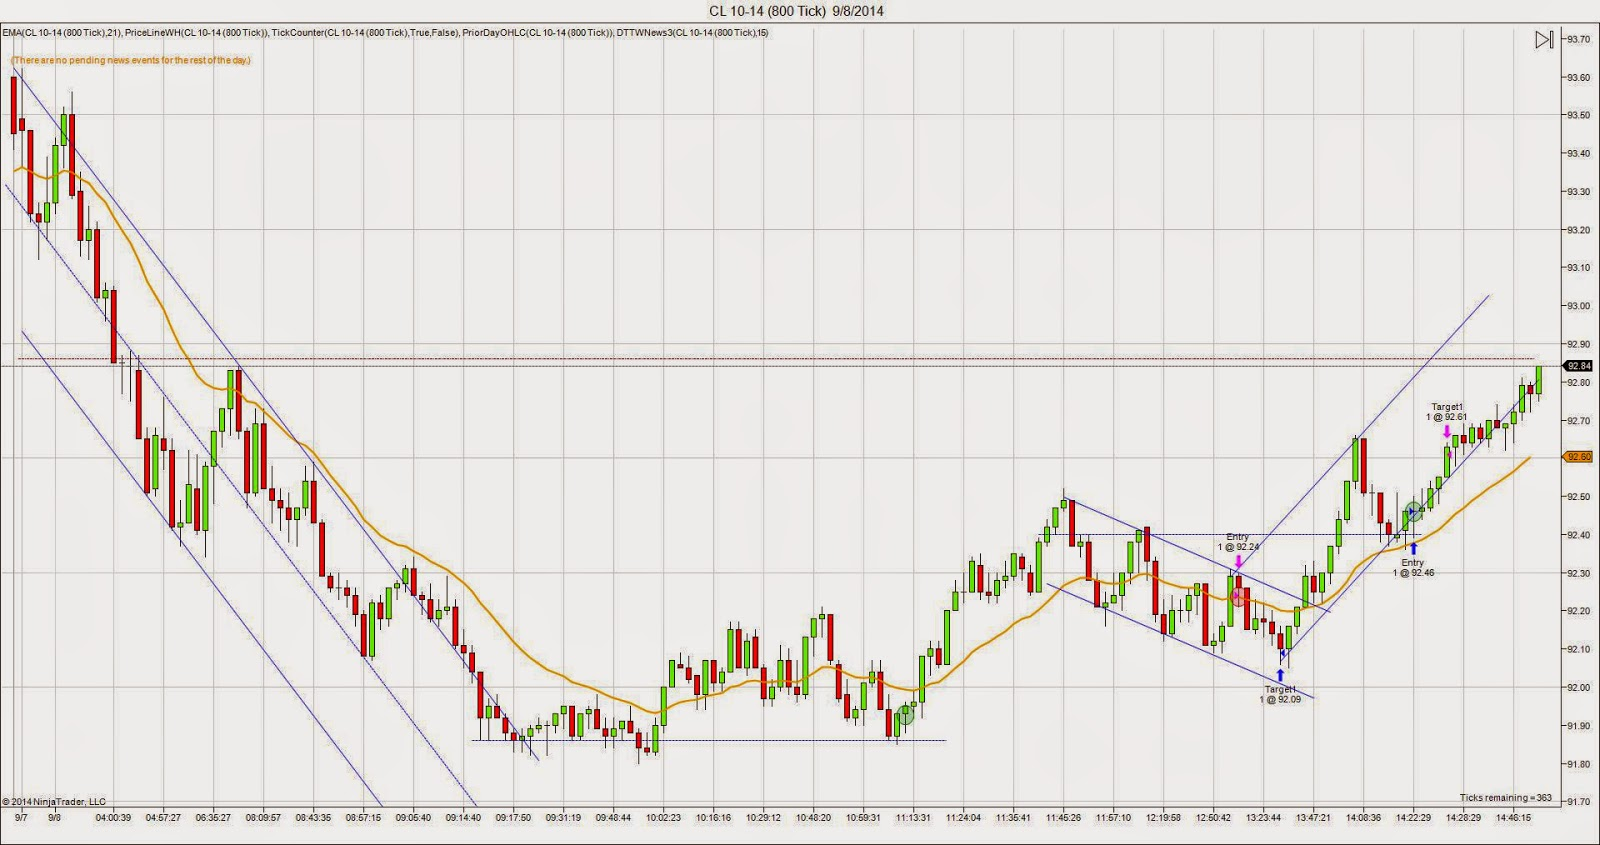 Crude Oil Futures chart for Monday 9/8/14